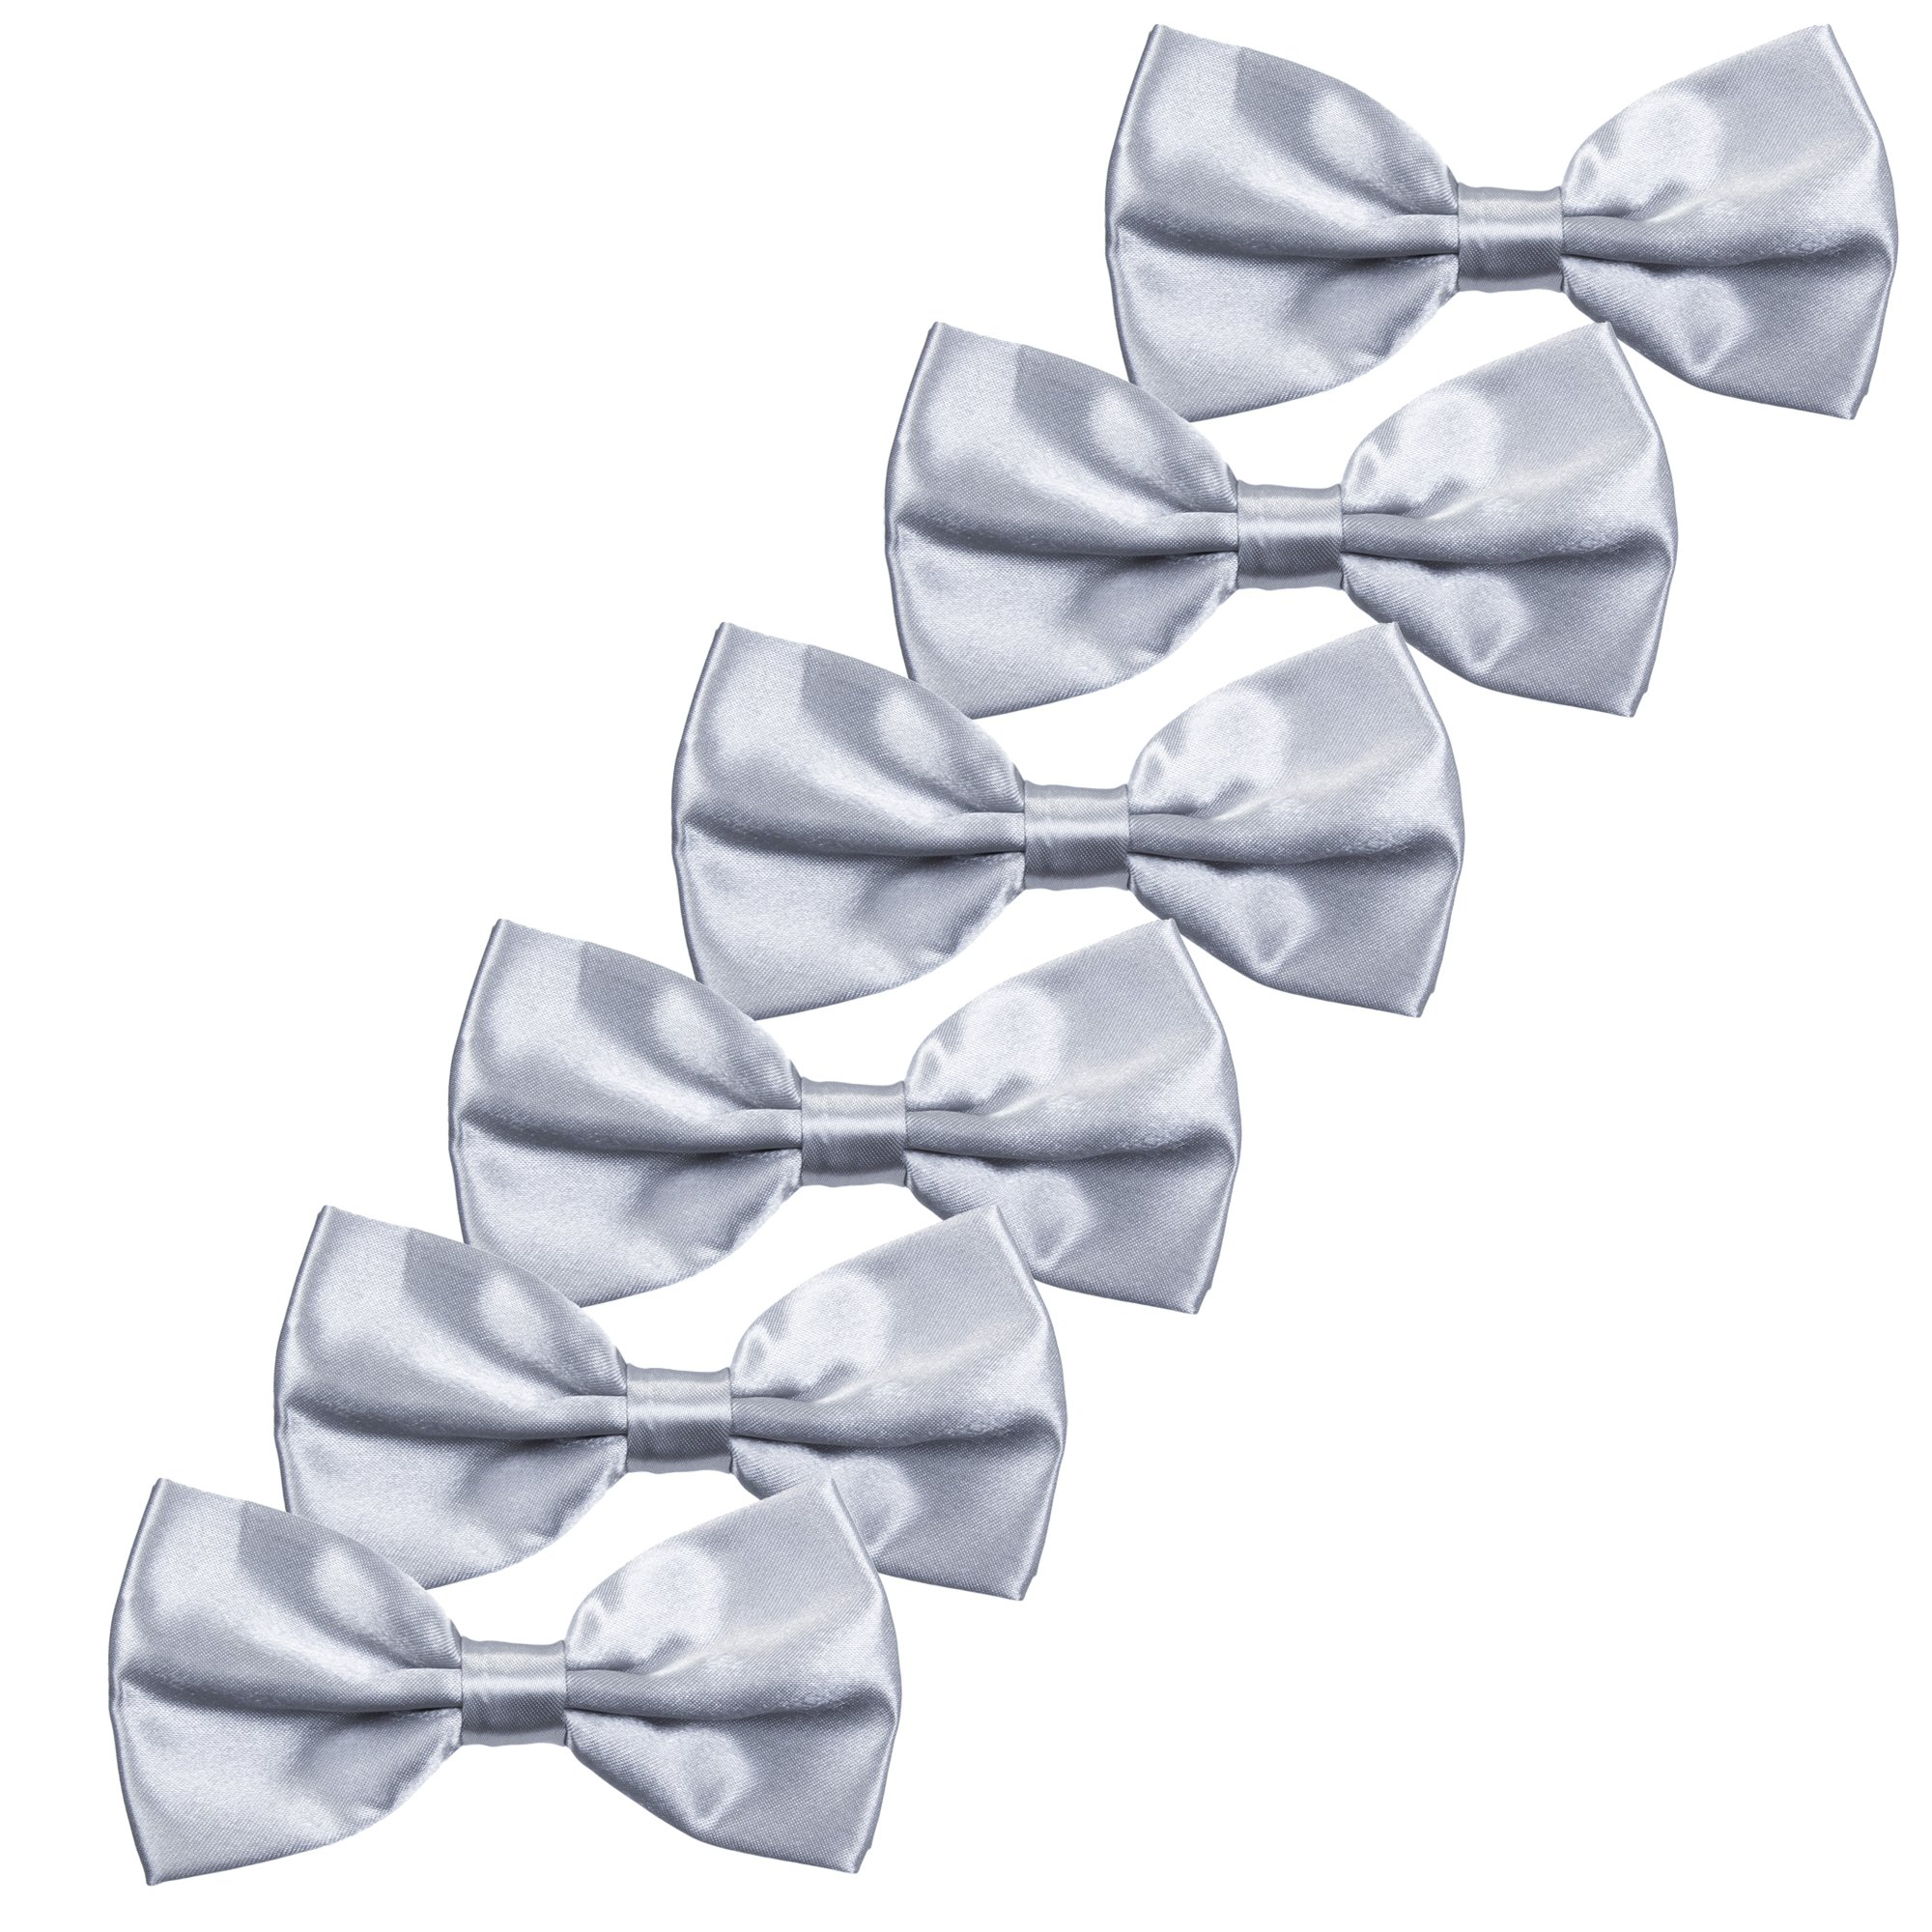 Boys Children Formal Bow Ties - 6 Pack of Solid Color Adjustable Pre Tied Bowties(Silver) by Kajeer (Image #1)